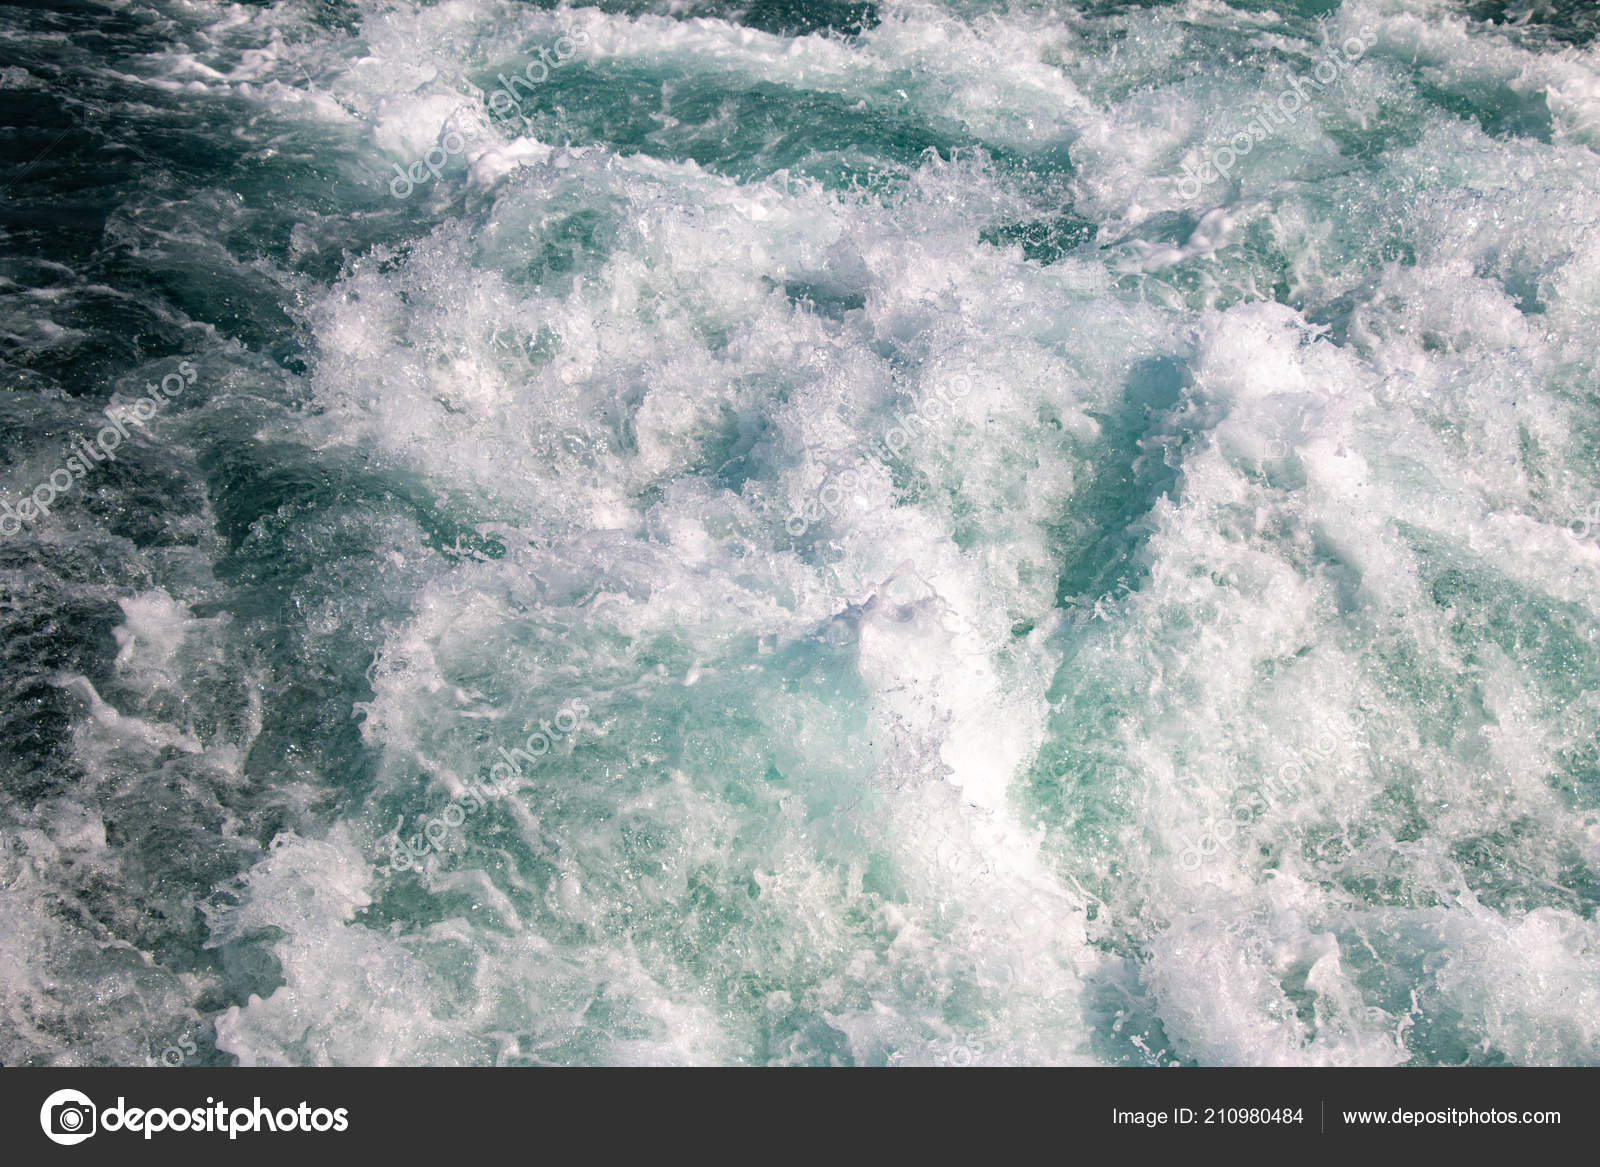 Surface Water Waves Texture White Foam Sea Water Waves